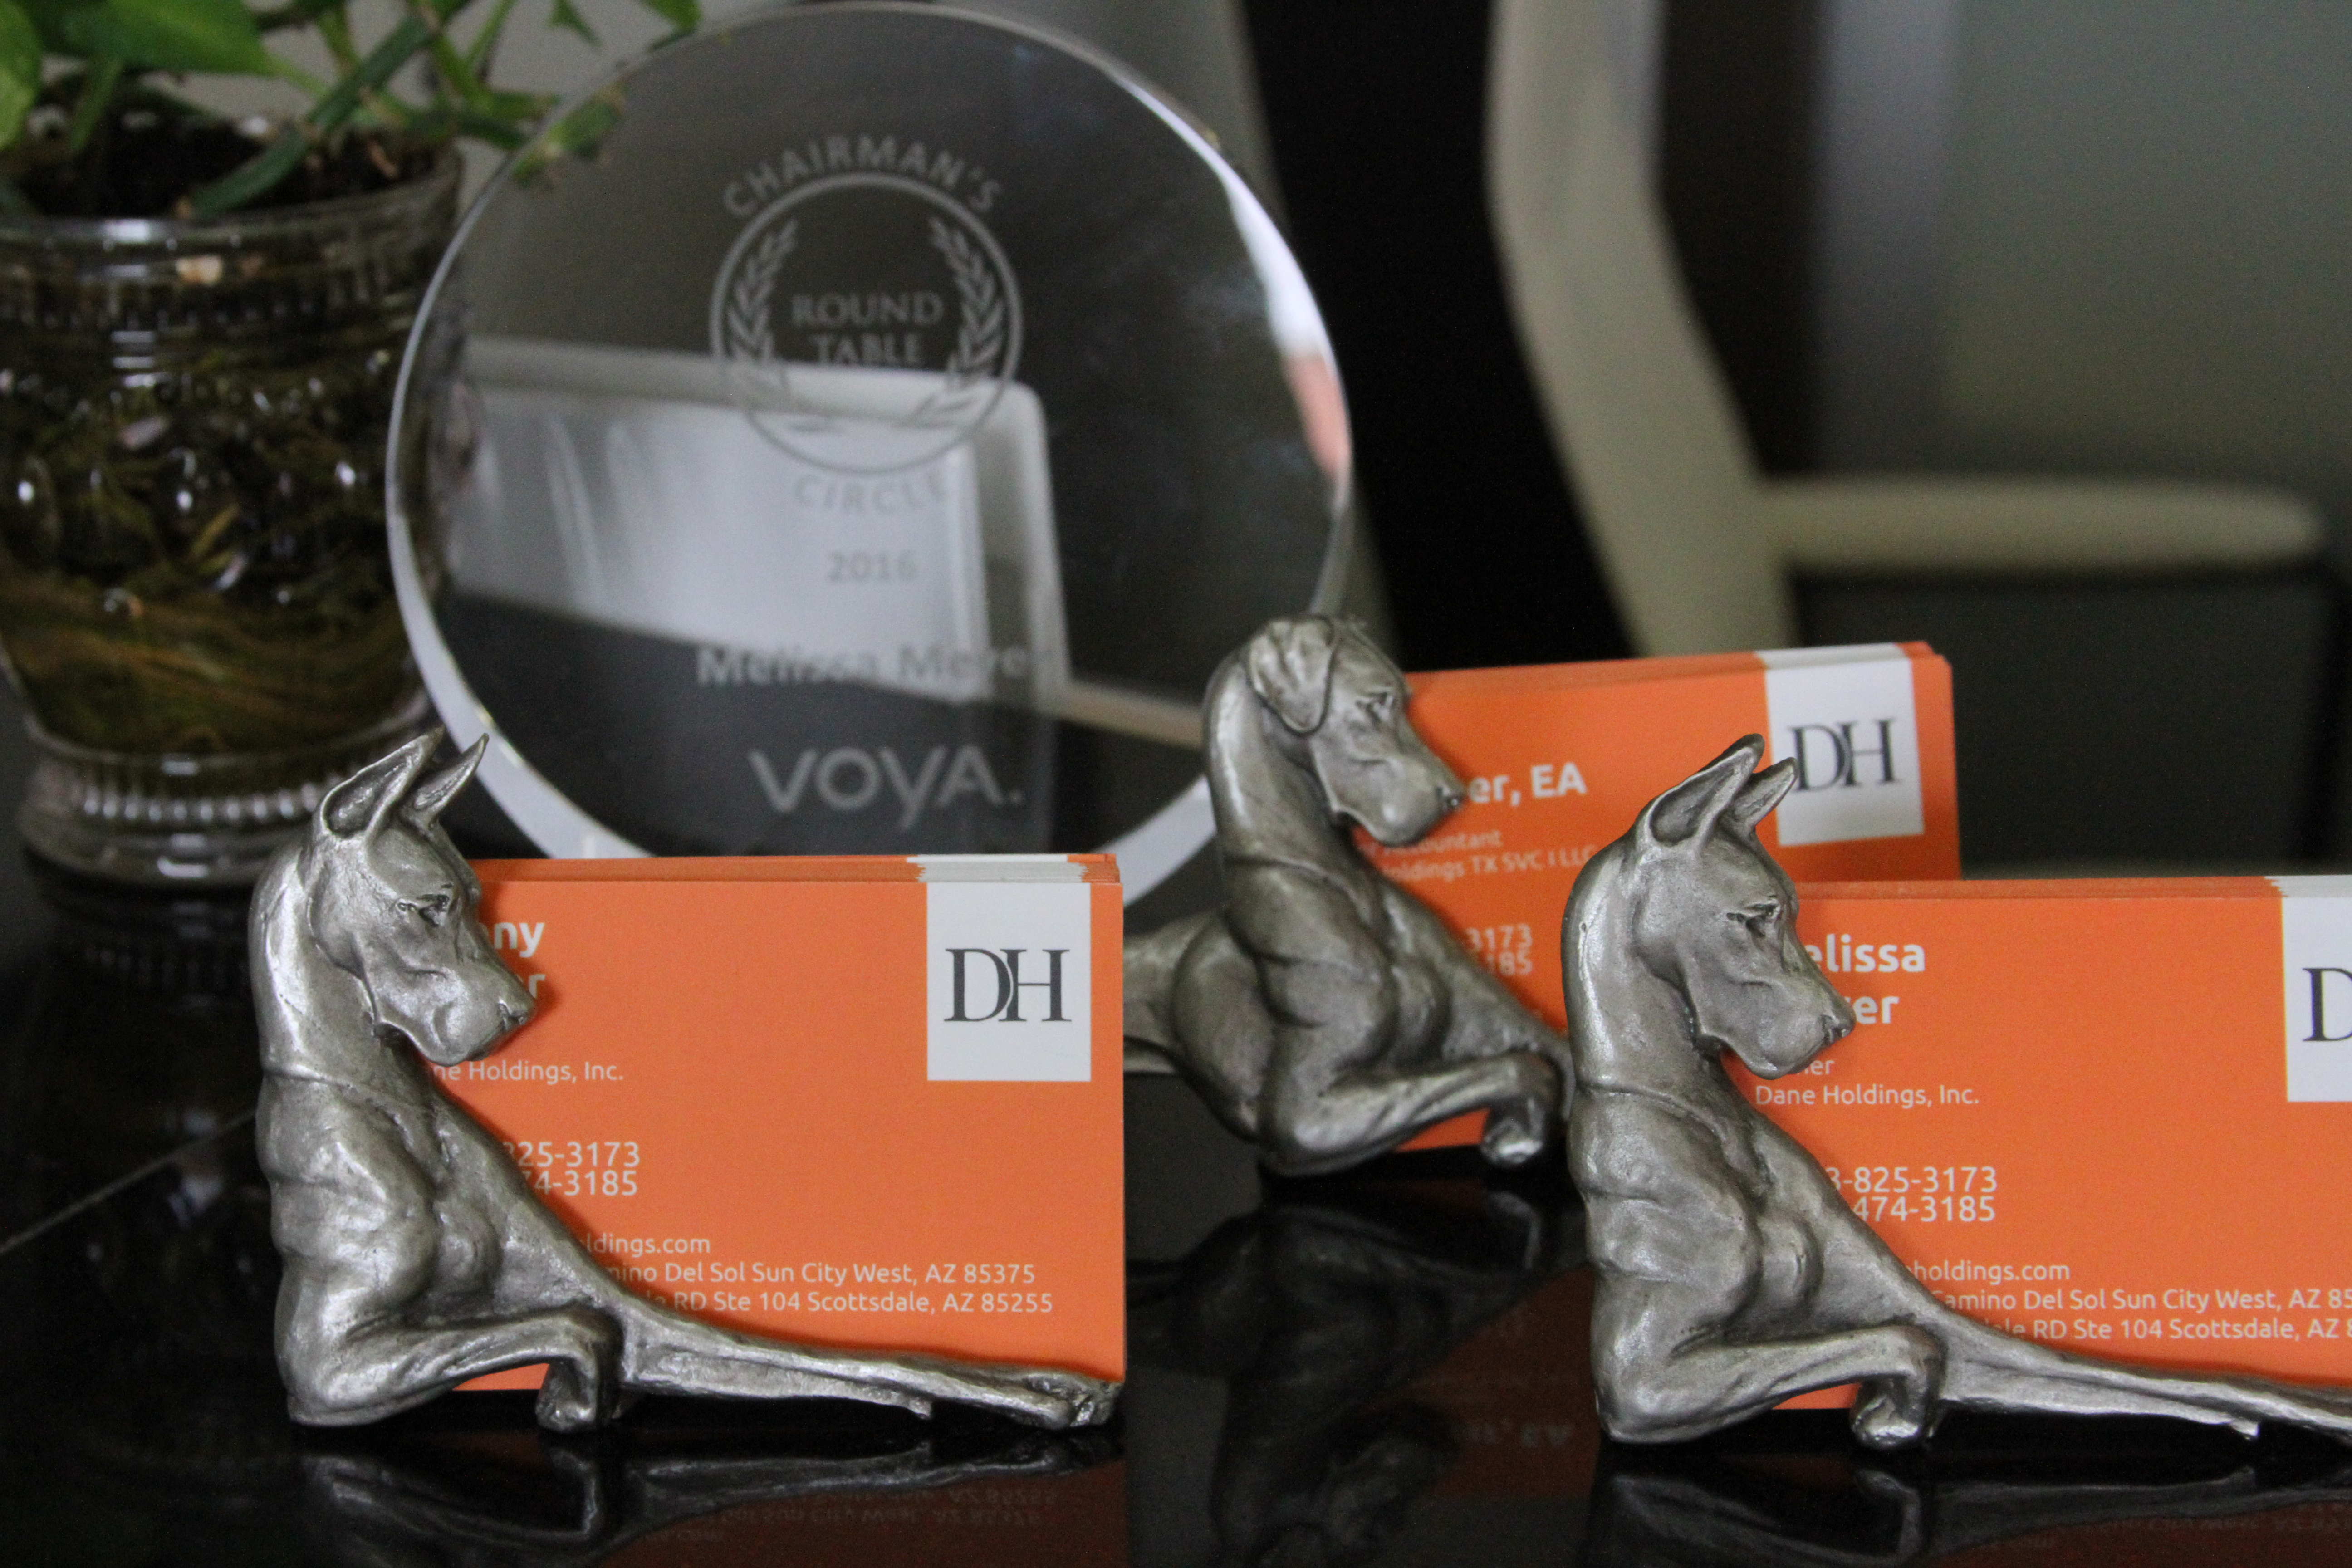 Great Danes, Awards and Business cards.